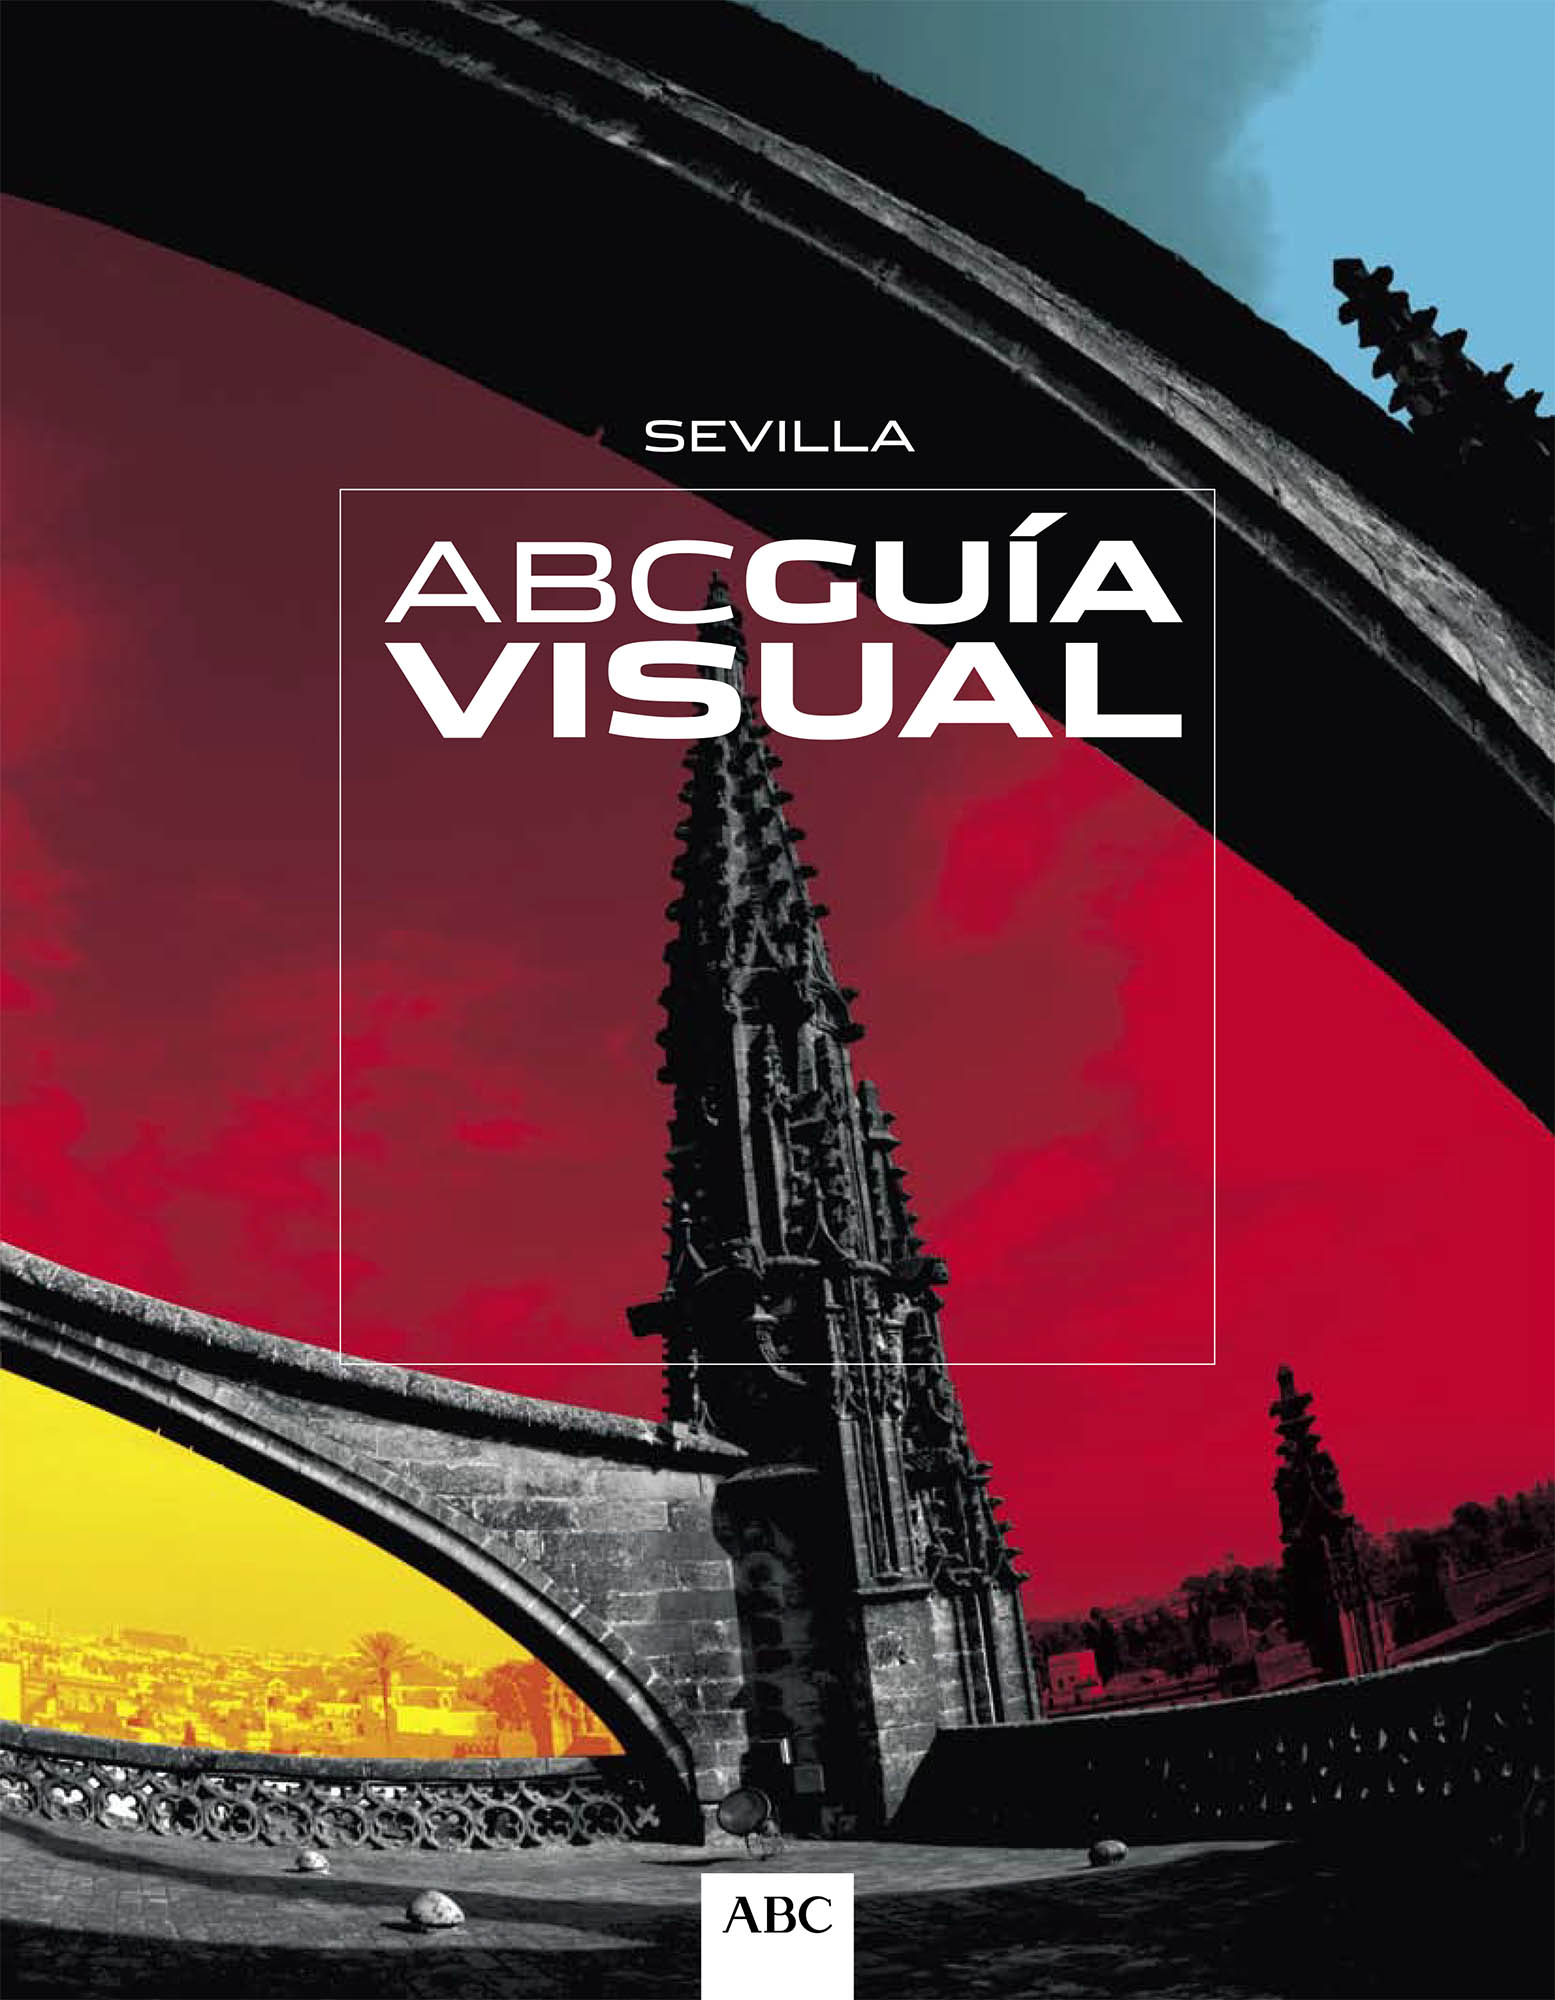 ABC Guía visual - Sevilla | ABC de Sevilla | abr 2008